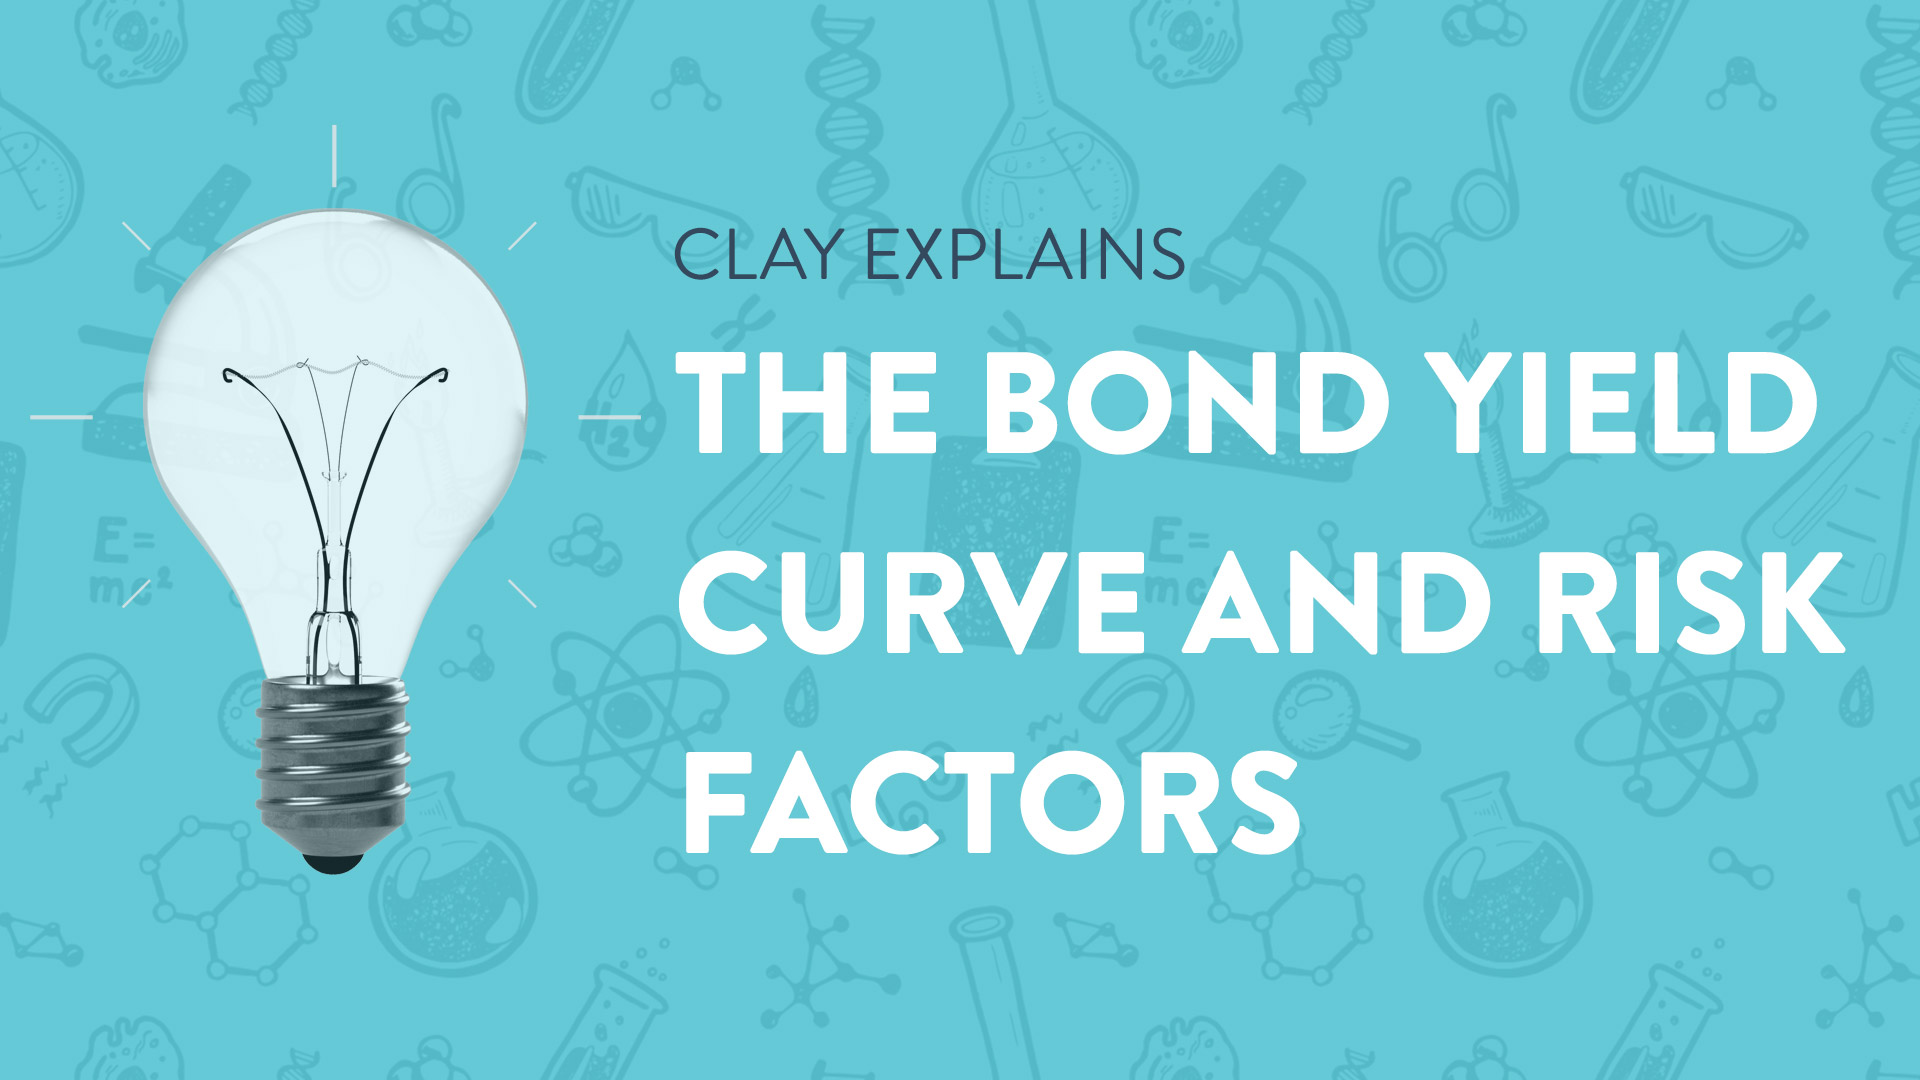 The Bond Yield Curve and Risk Factors